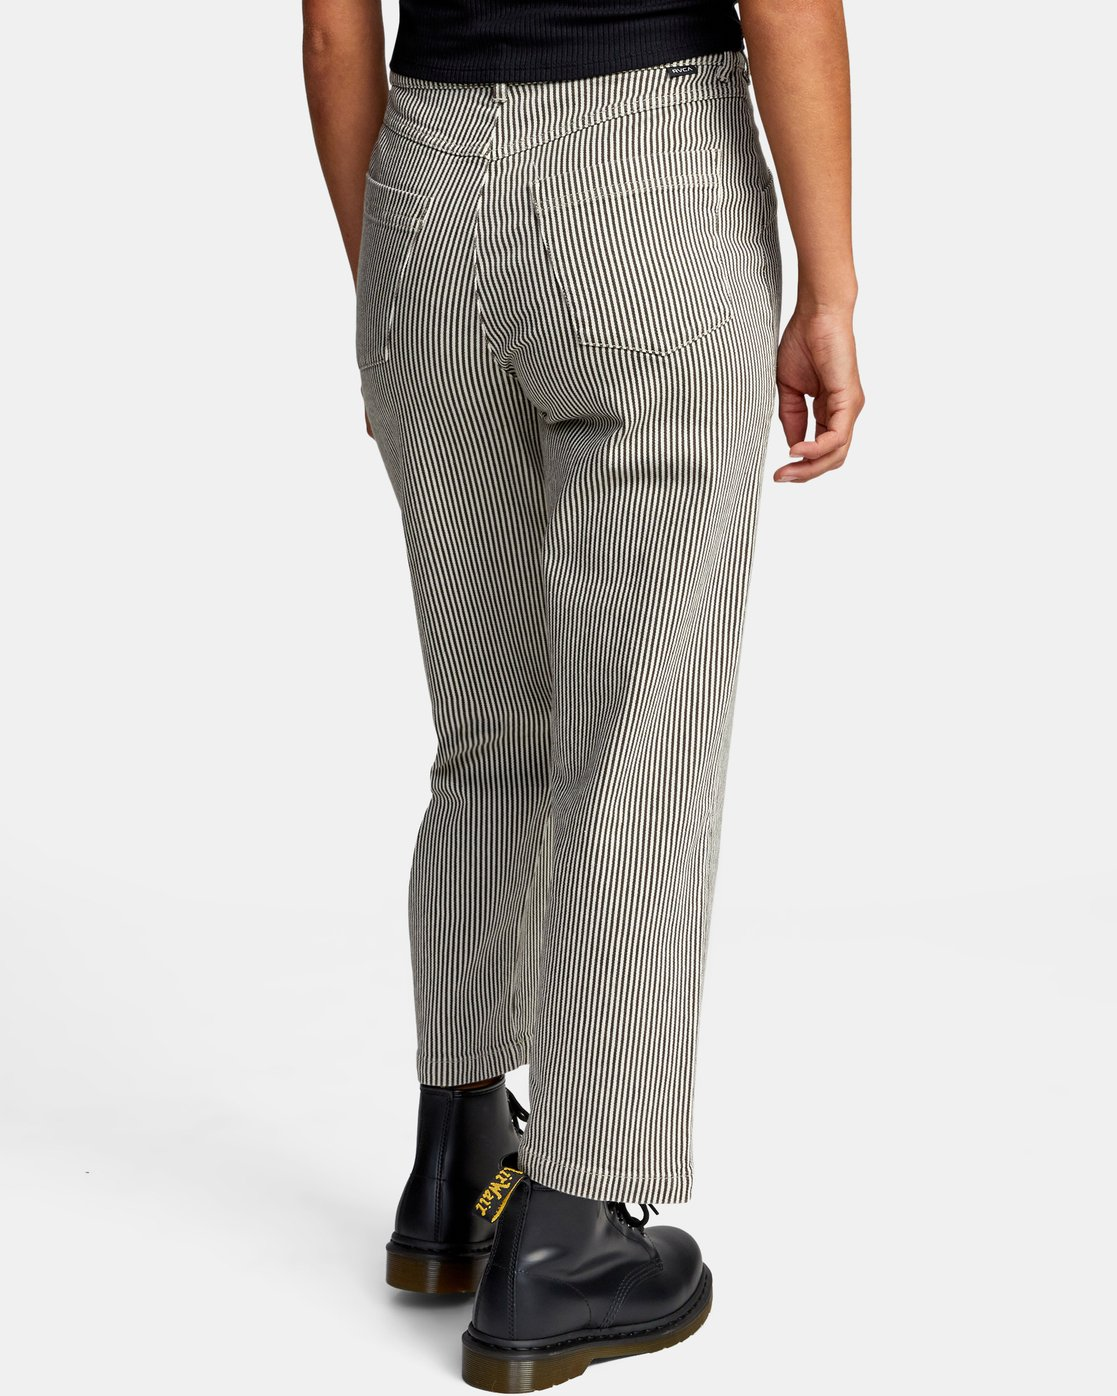 5 BADDER RELAXED FIT PANT  AVJNP00106 RVCA